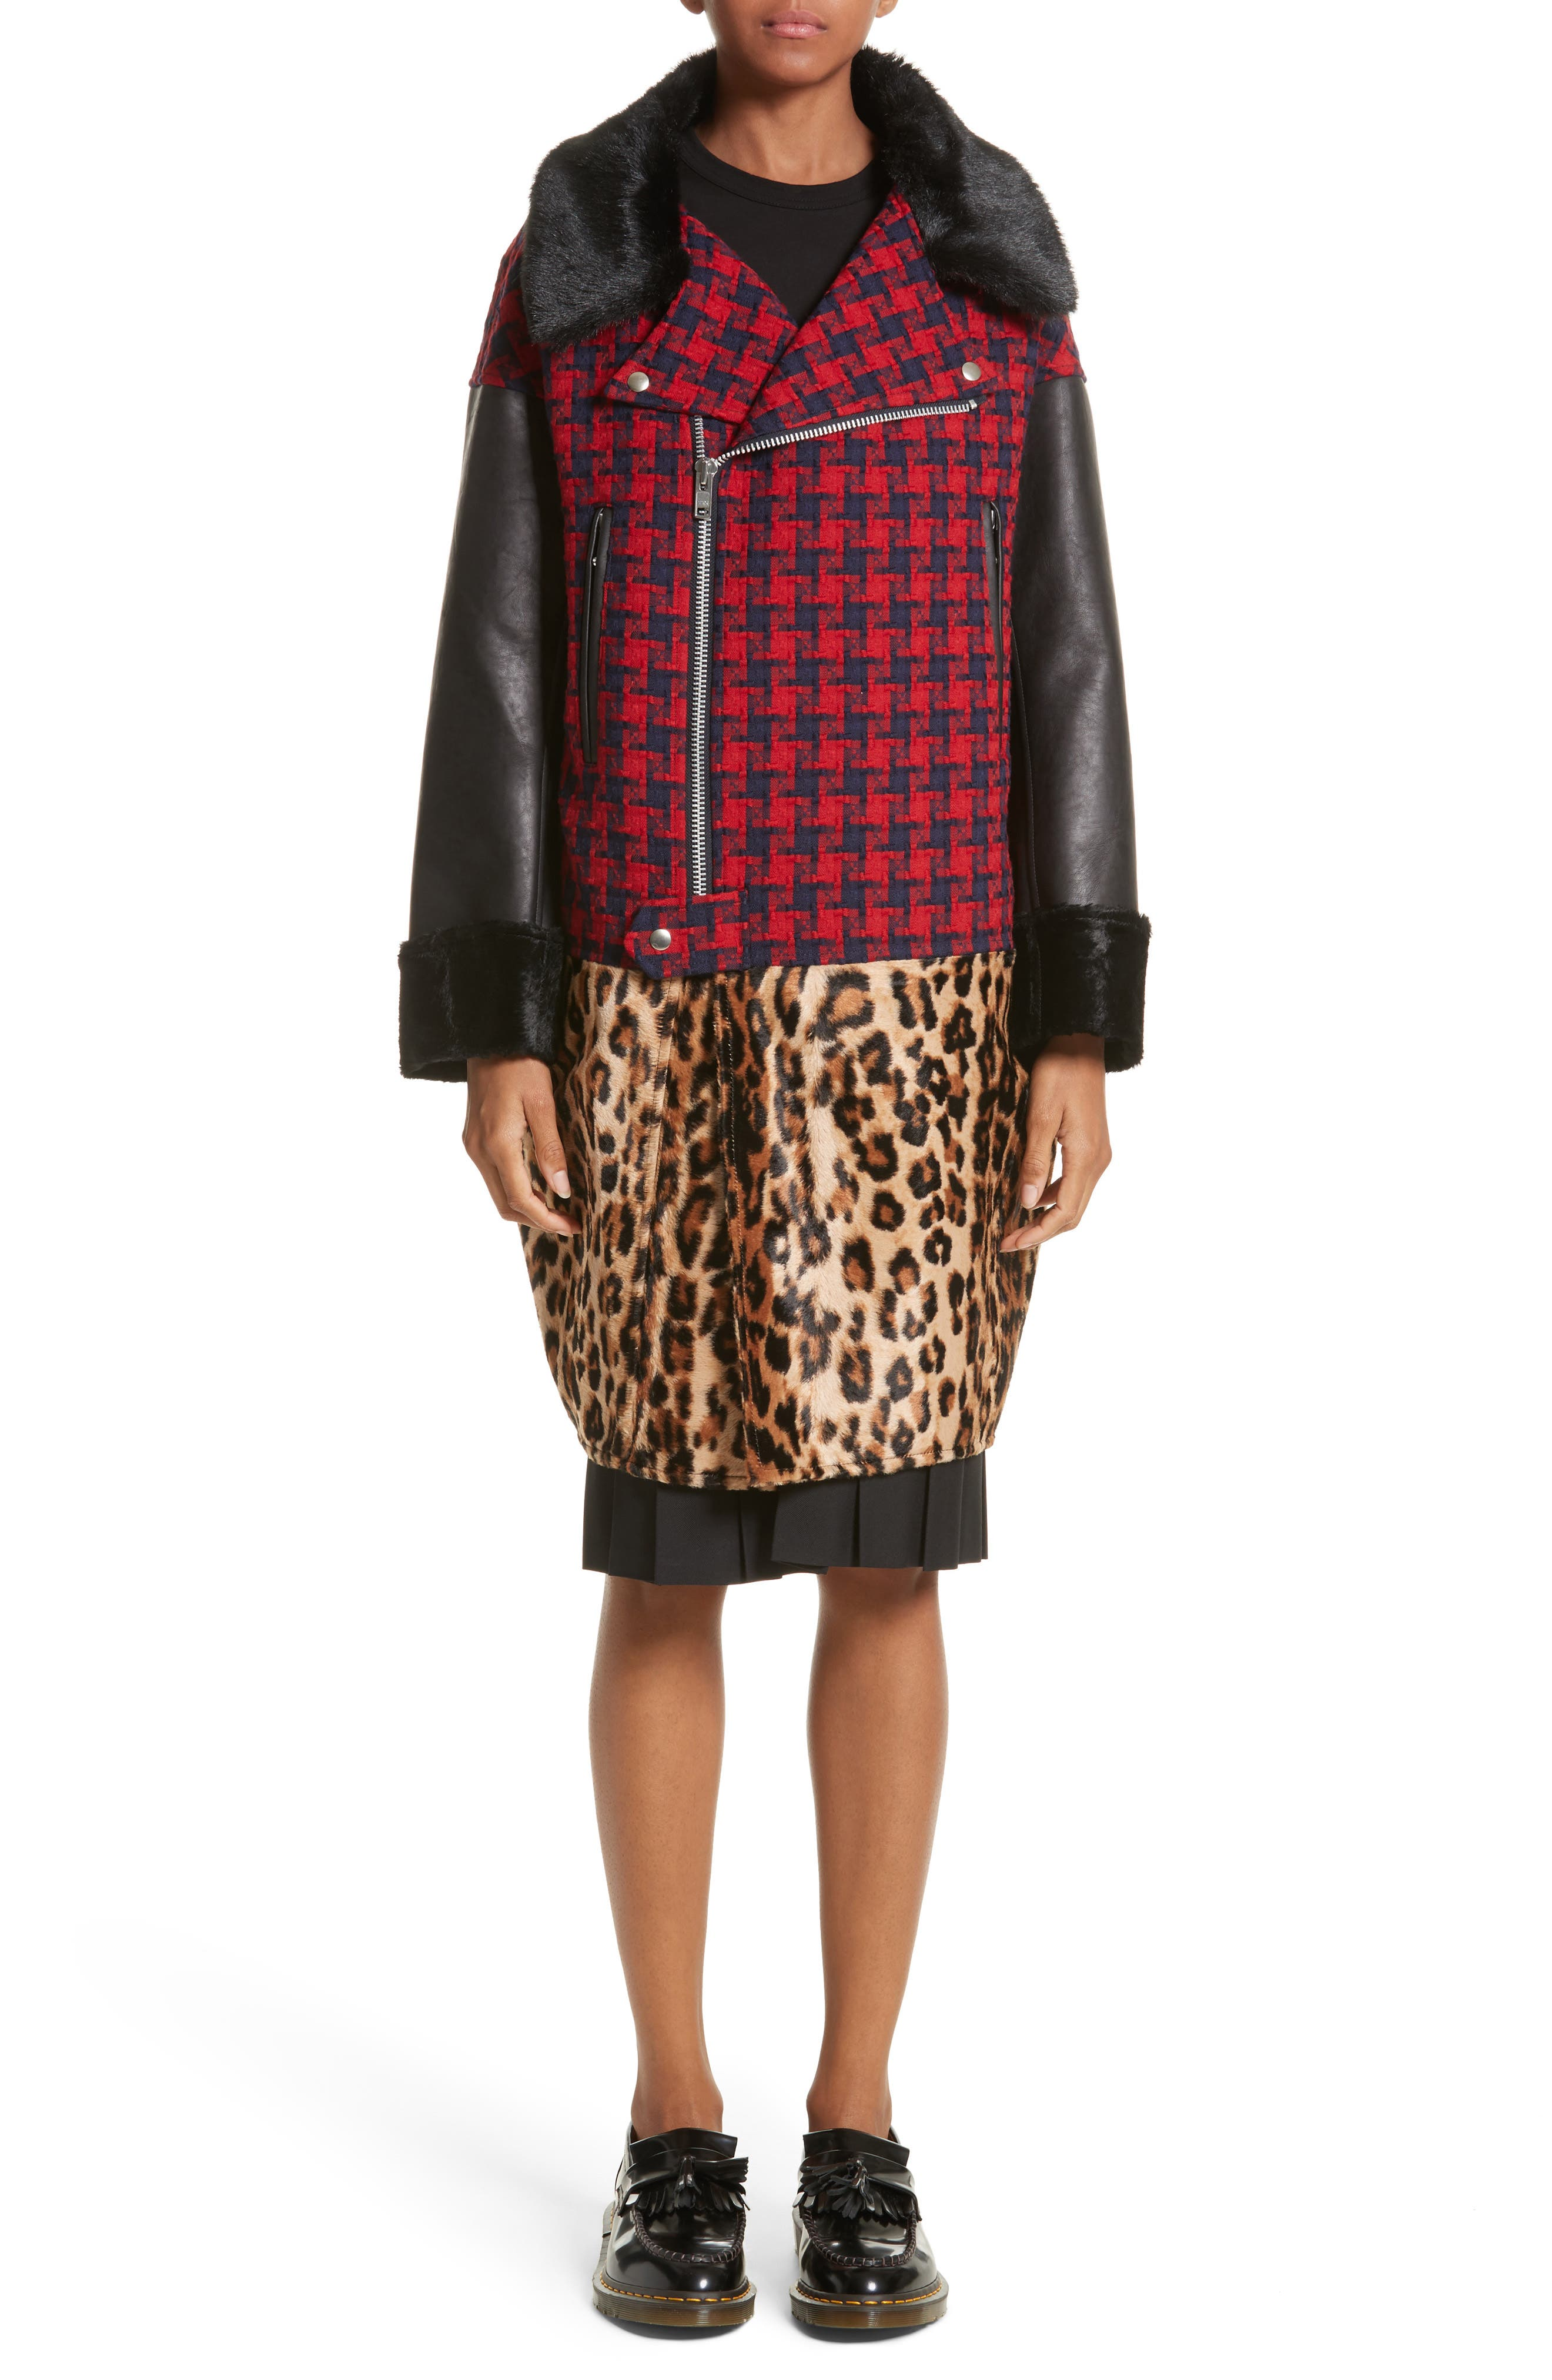 Buffalo Check Moto Jacket with Faux Fur Trim,                             Main thumbnail 1, color,                             Red/Nvy X Bge/Brn